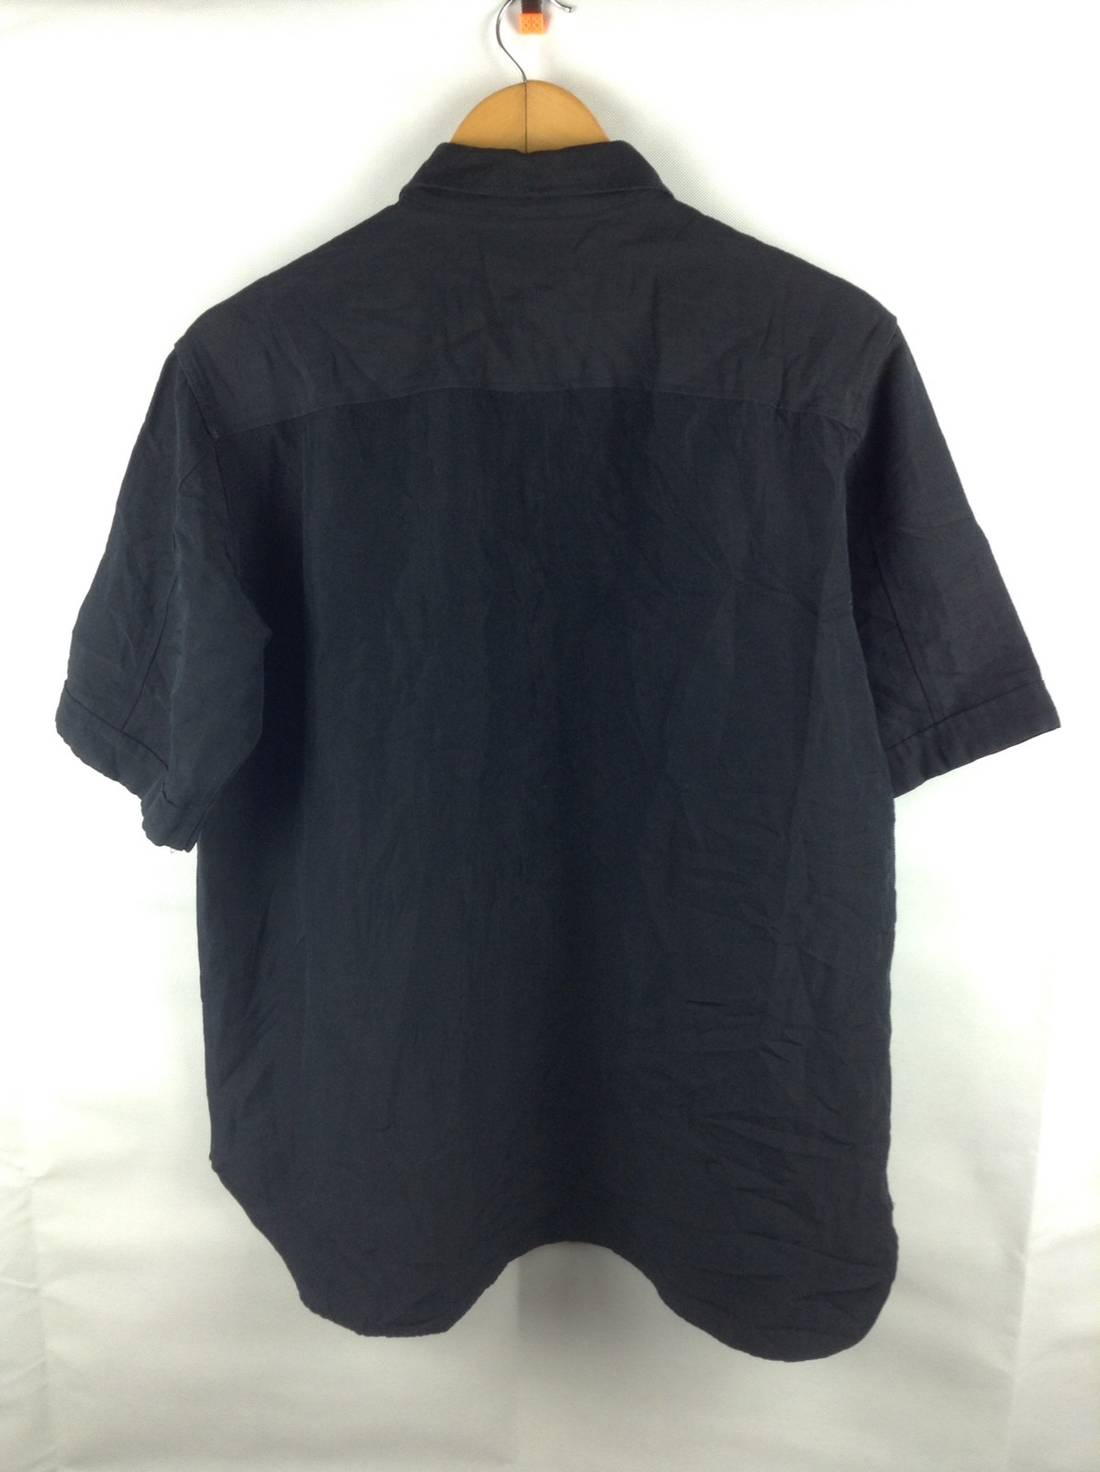 A.A.R.YOHJI YAMAMO TO Men shirt Size Medium.